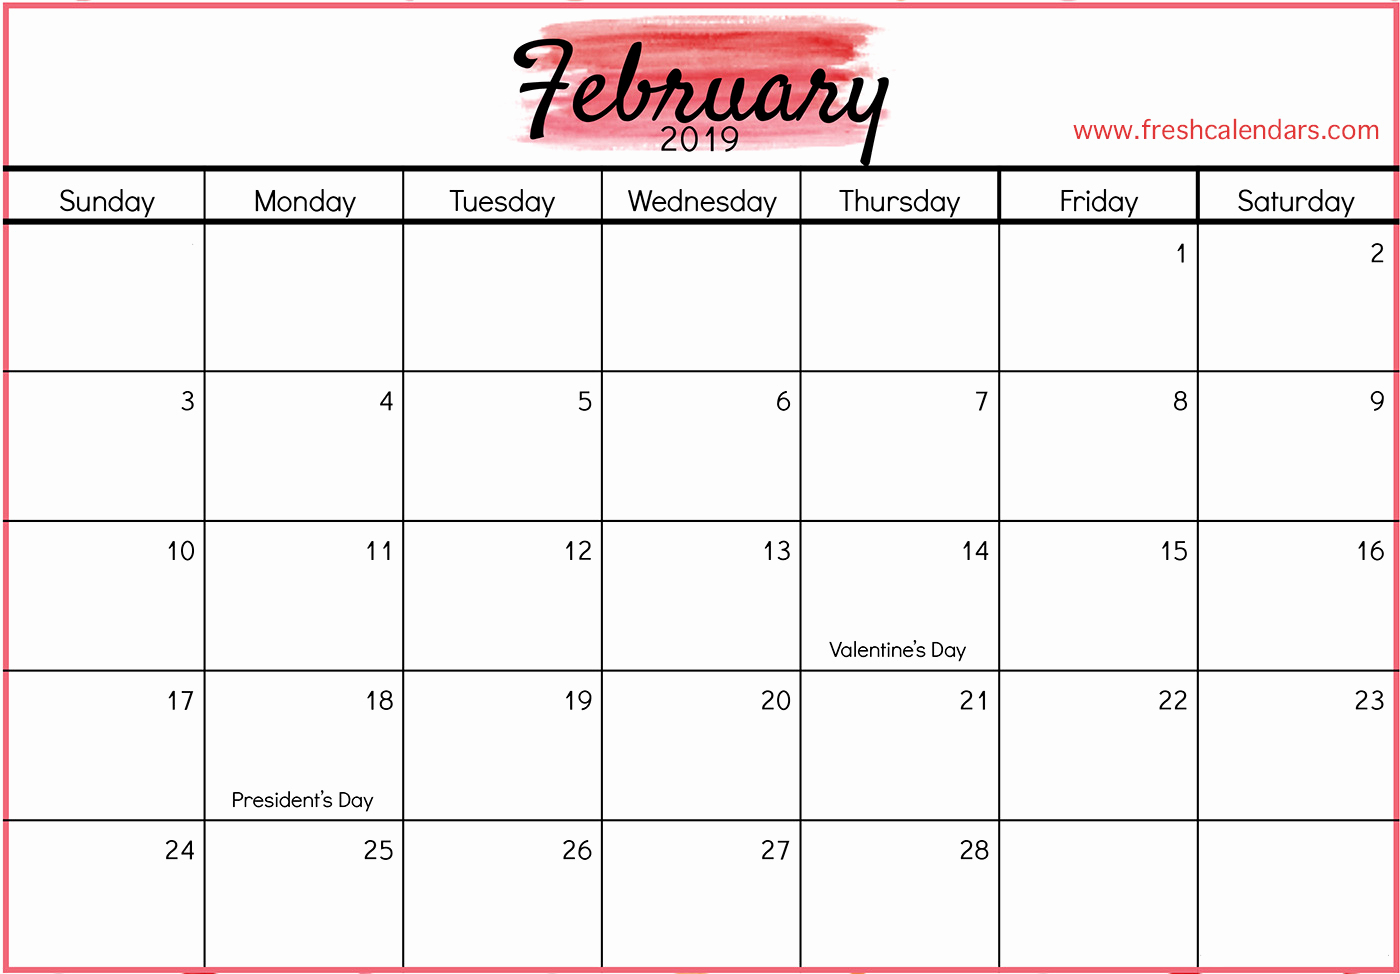 February 2019 Calendar Printable Template With Holidays